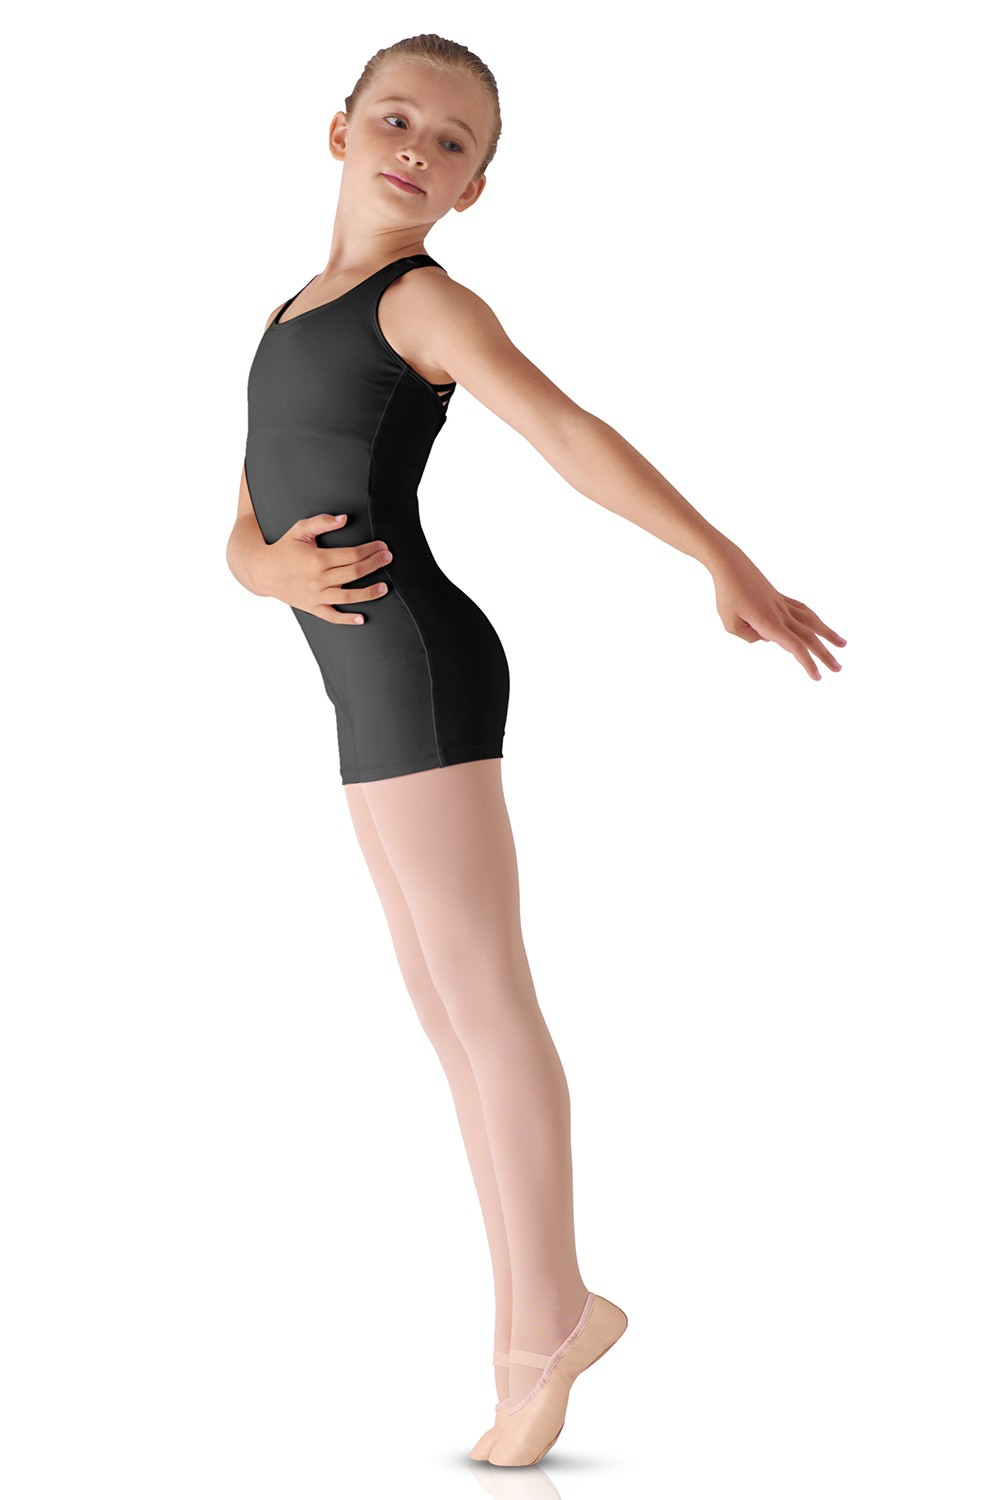 Strap Back Unitard Children's Dance Leotards